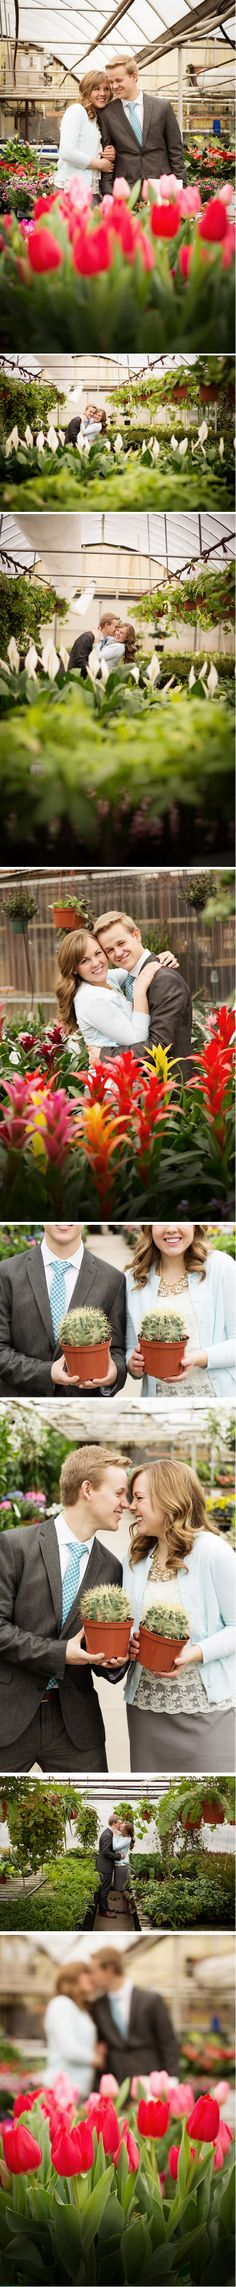 Engagement Photos In Local Greenhouse The Perfect Way To Show Some Extra Color During Winter Months At J Nursery Layton Utah Luddington